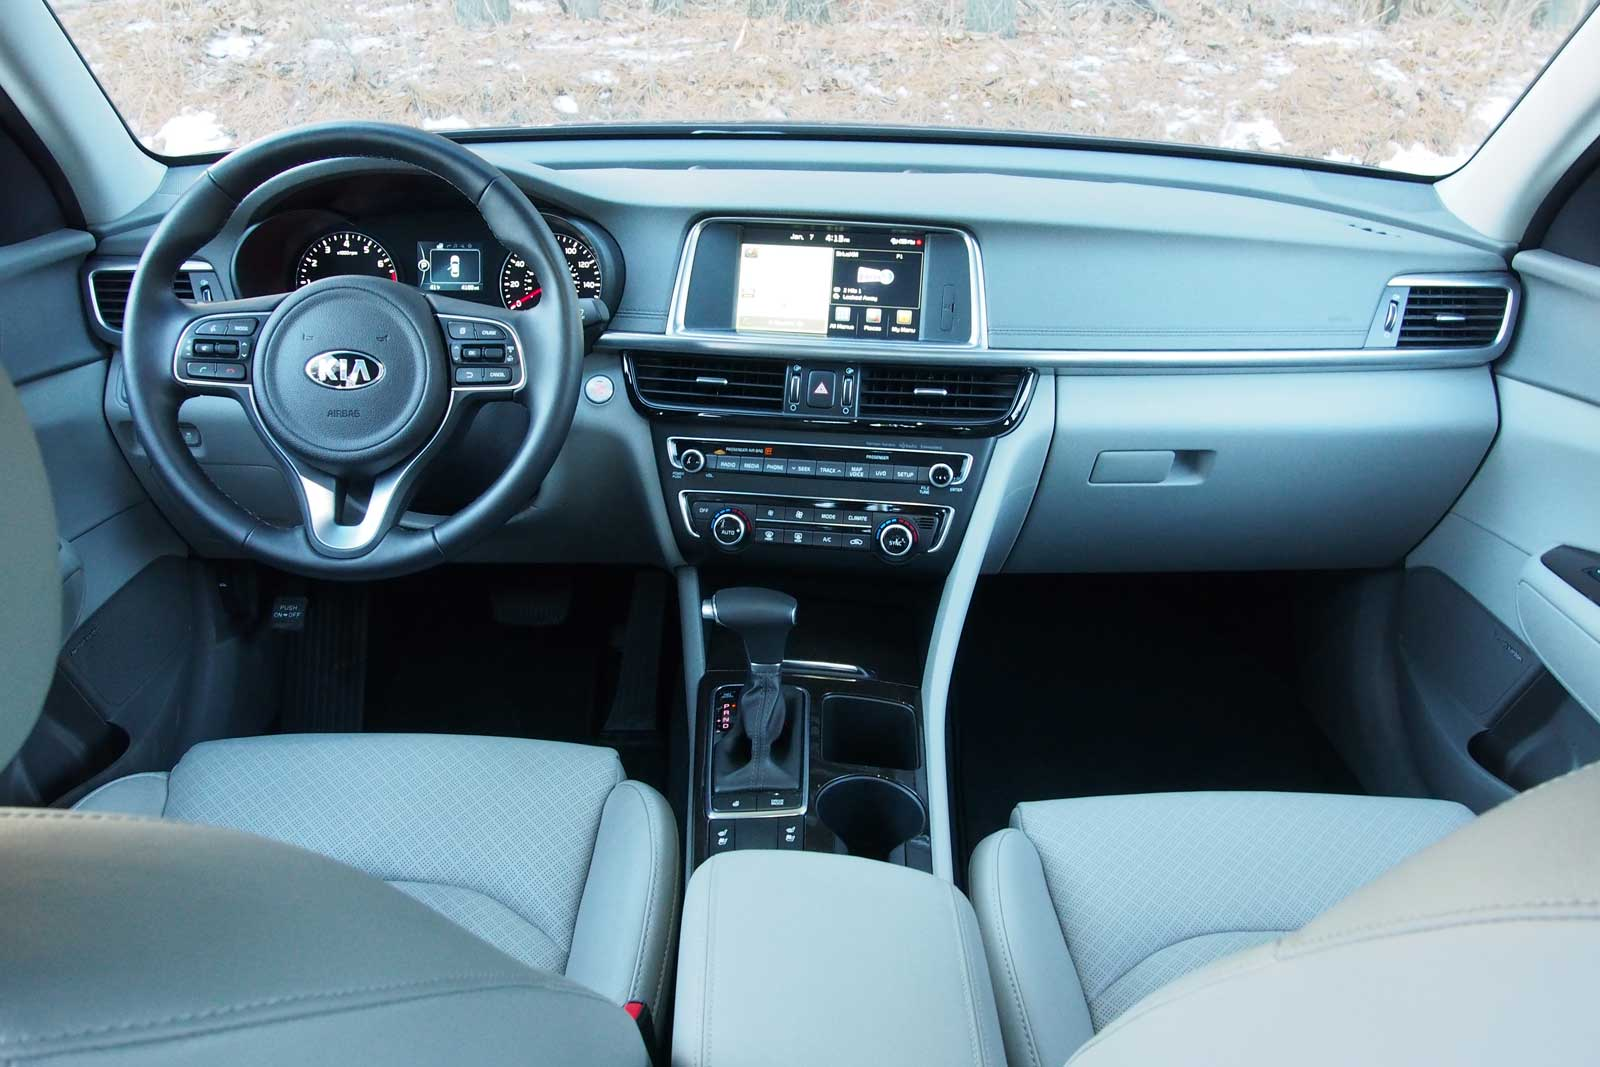 Kia Optima: Interior overview